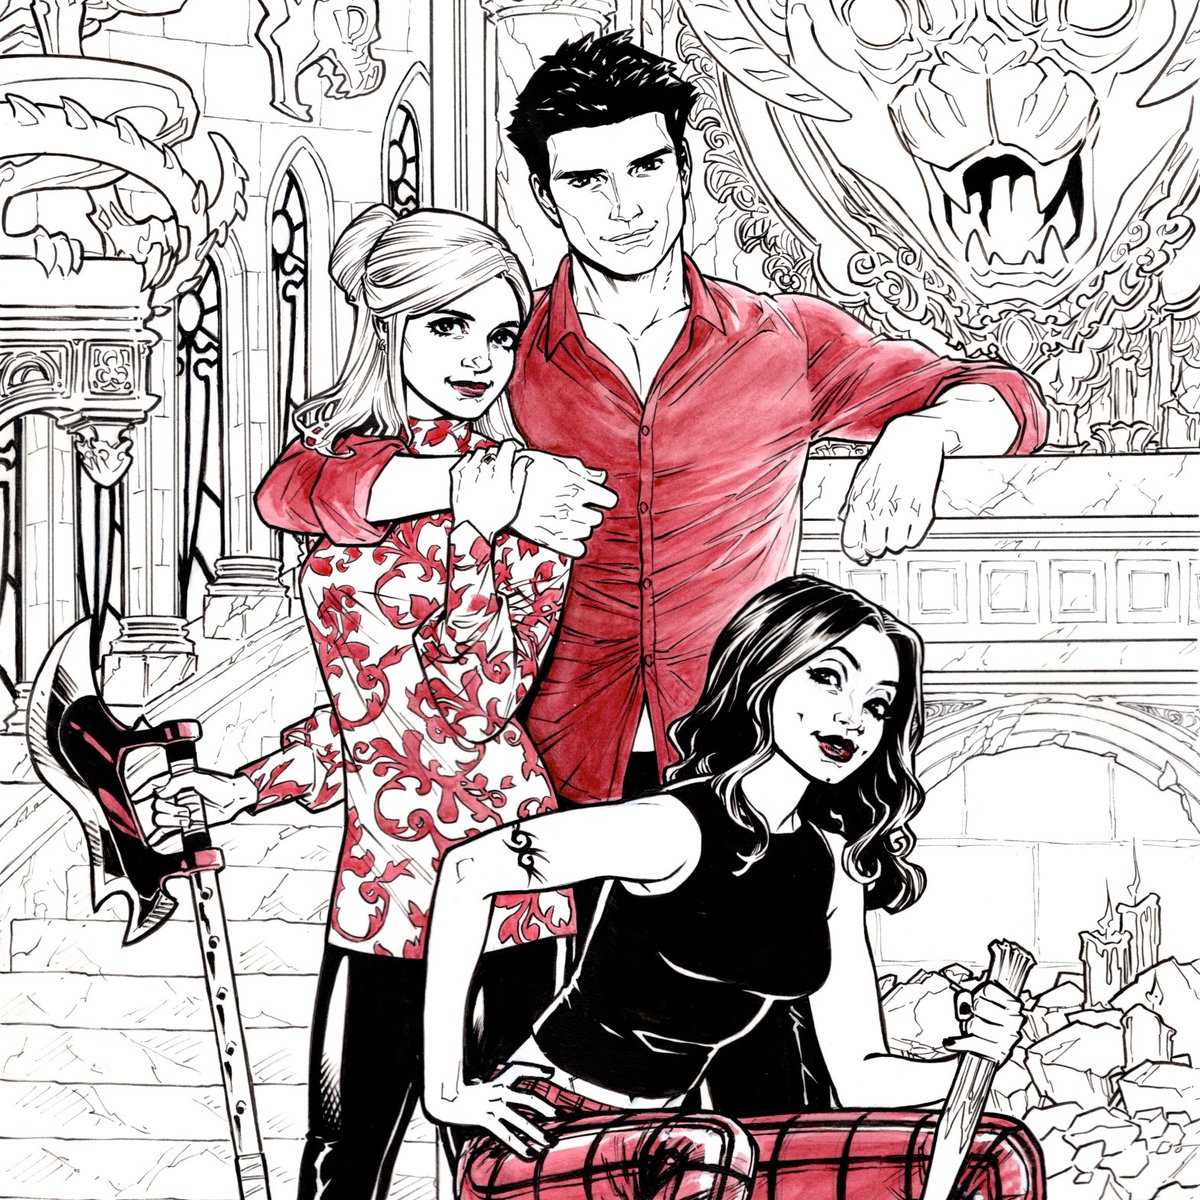 Buffy+Angel+Faith commission - I wanted to do something like that Entertainment Weekly reunion photo shoot where the whole cast just hung out in front of gothic backdrops lookin HAWT